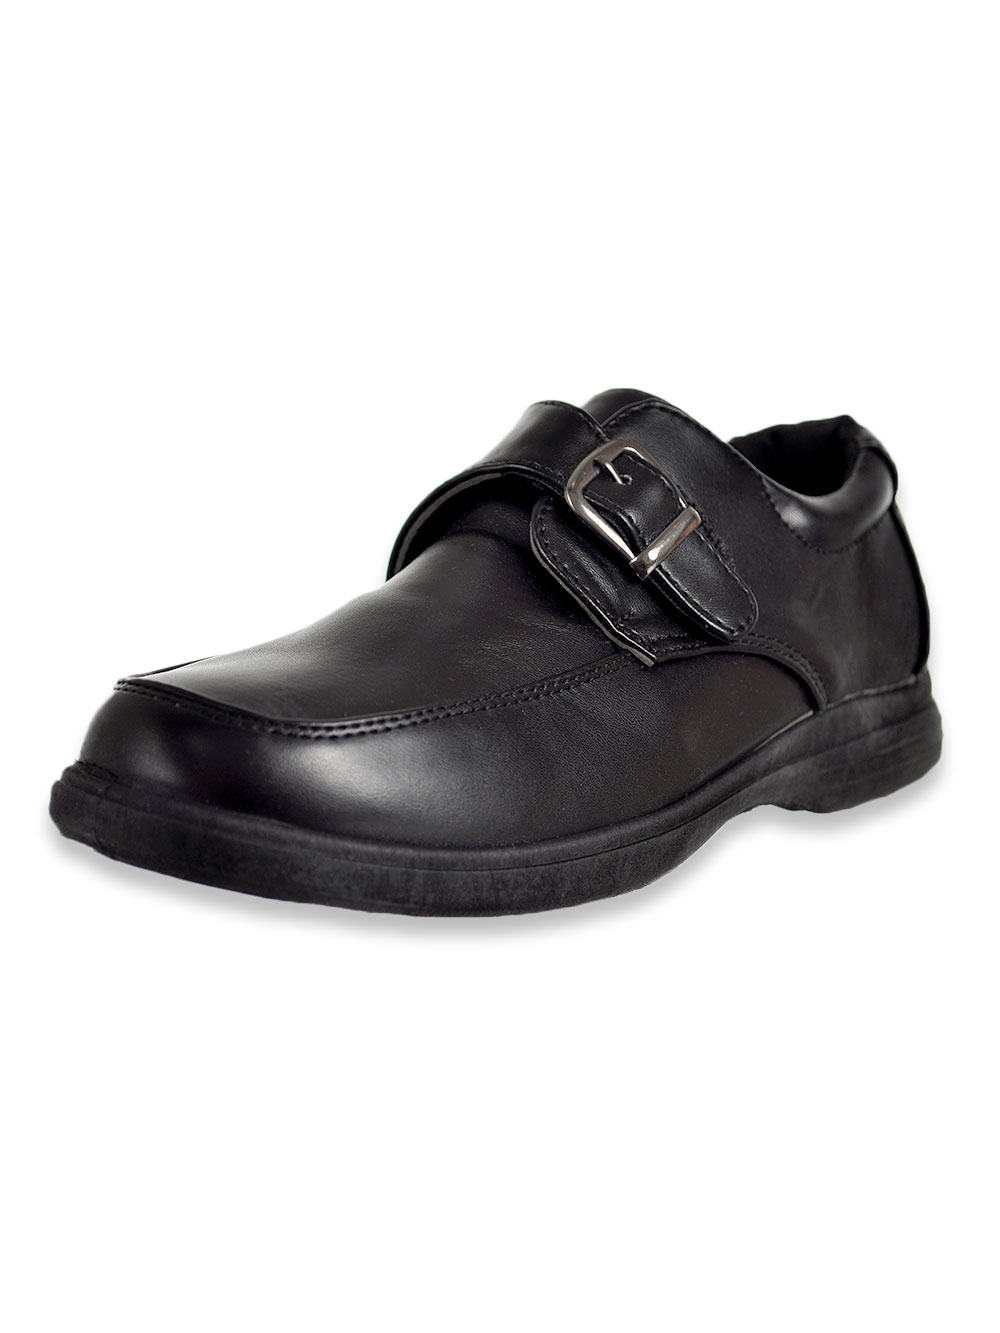 Boys' Buckle Strap School Shoes